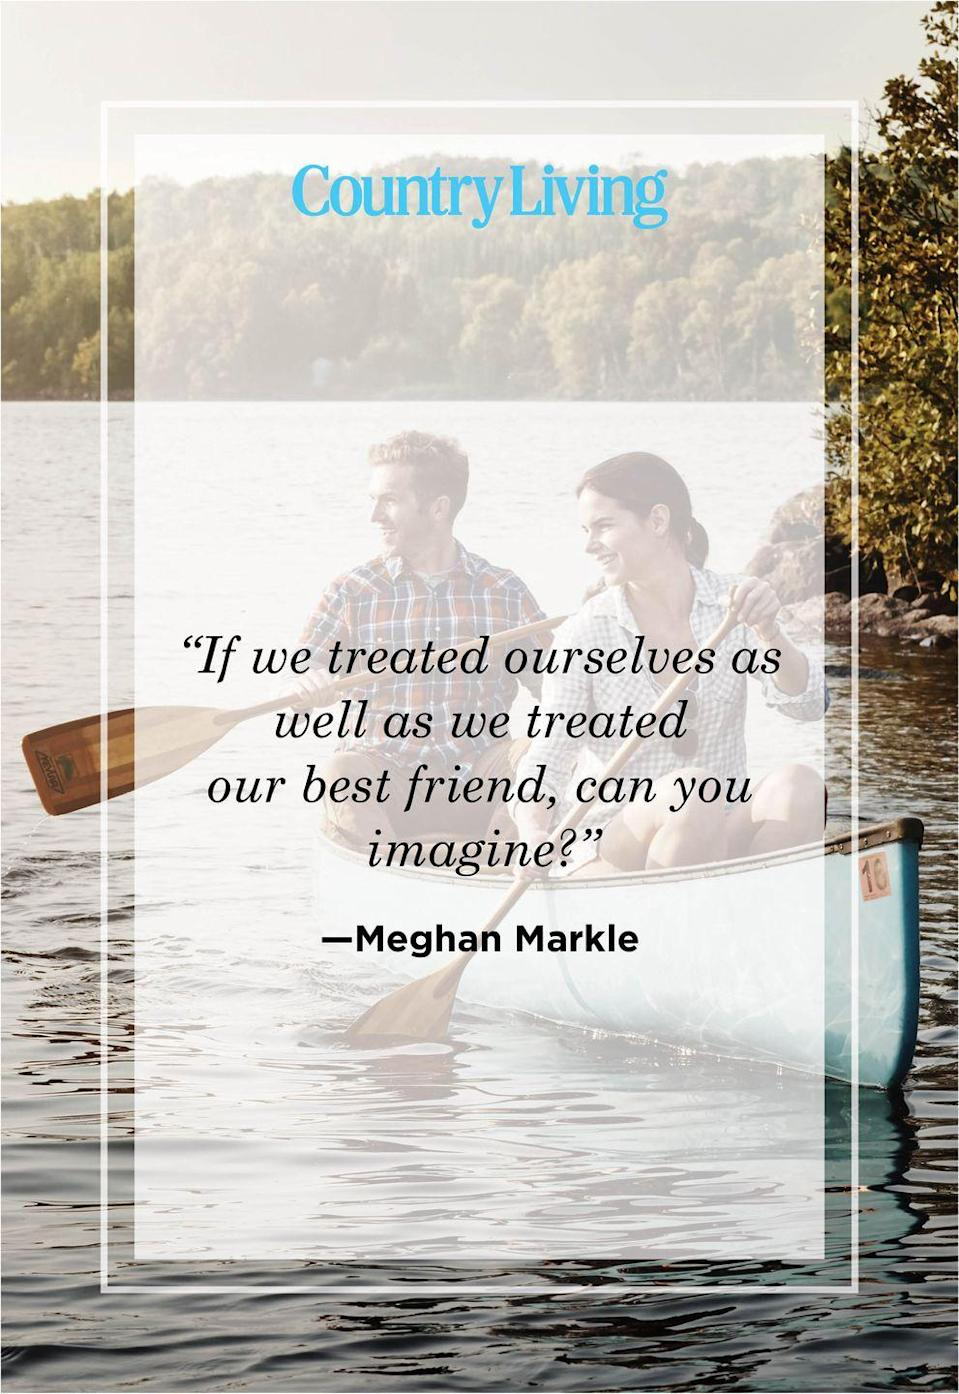 "<p>""If we treated ourselves as well as we treated our best friend, can you imagine?""</p>"